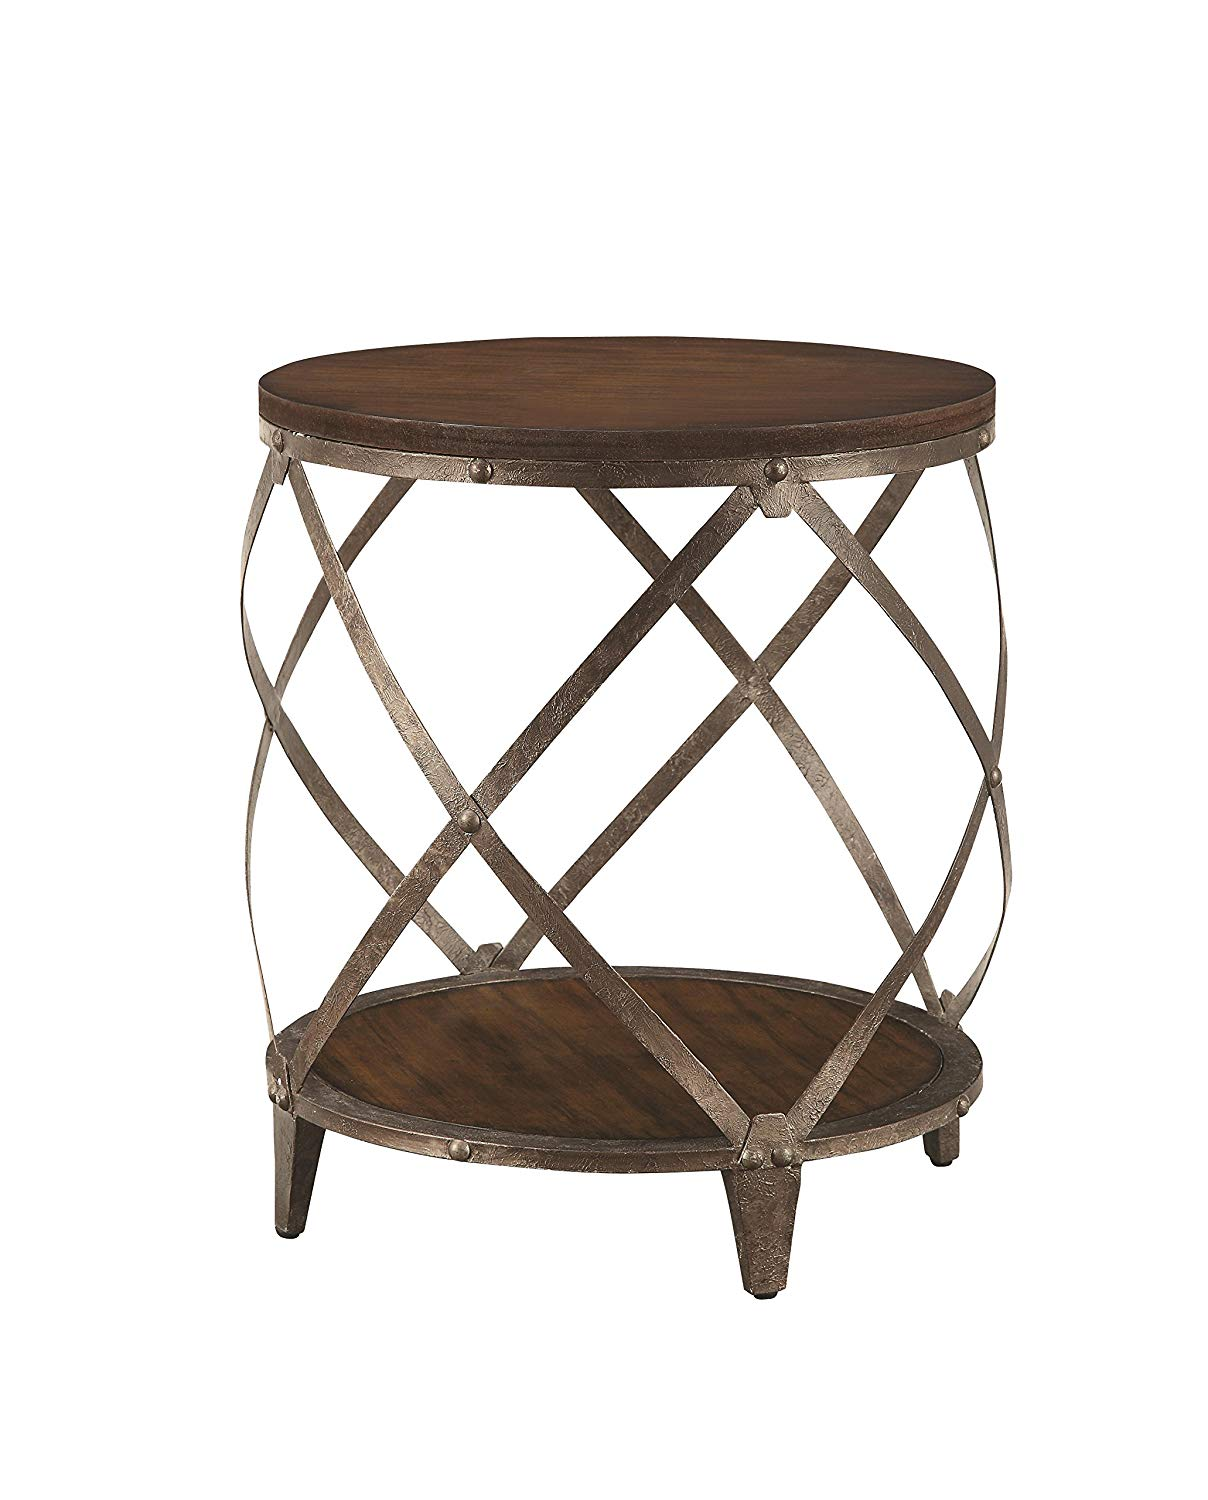 metal accent table with drum shape brown kitchen dining round cream nightstand lamps small chest drawers for hallway grey placemats barn door room west elm end console cabinets